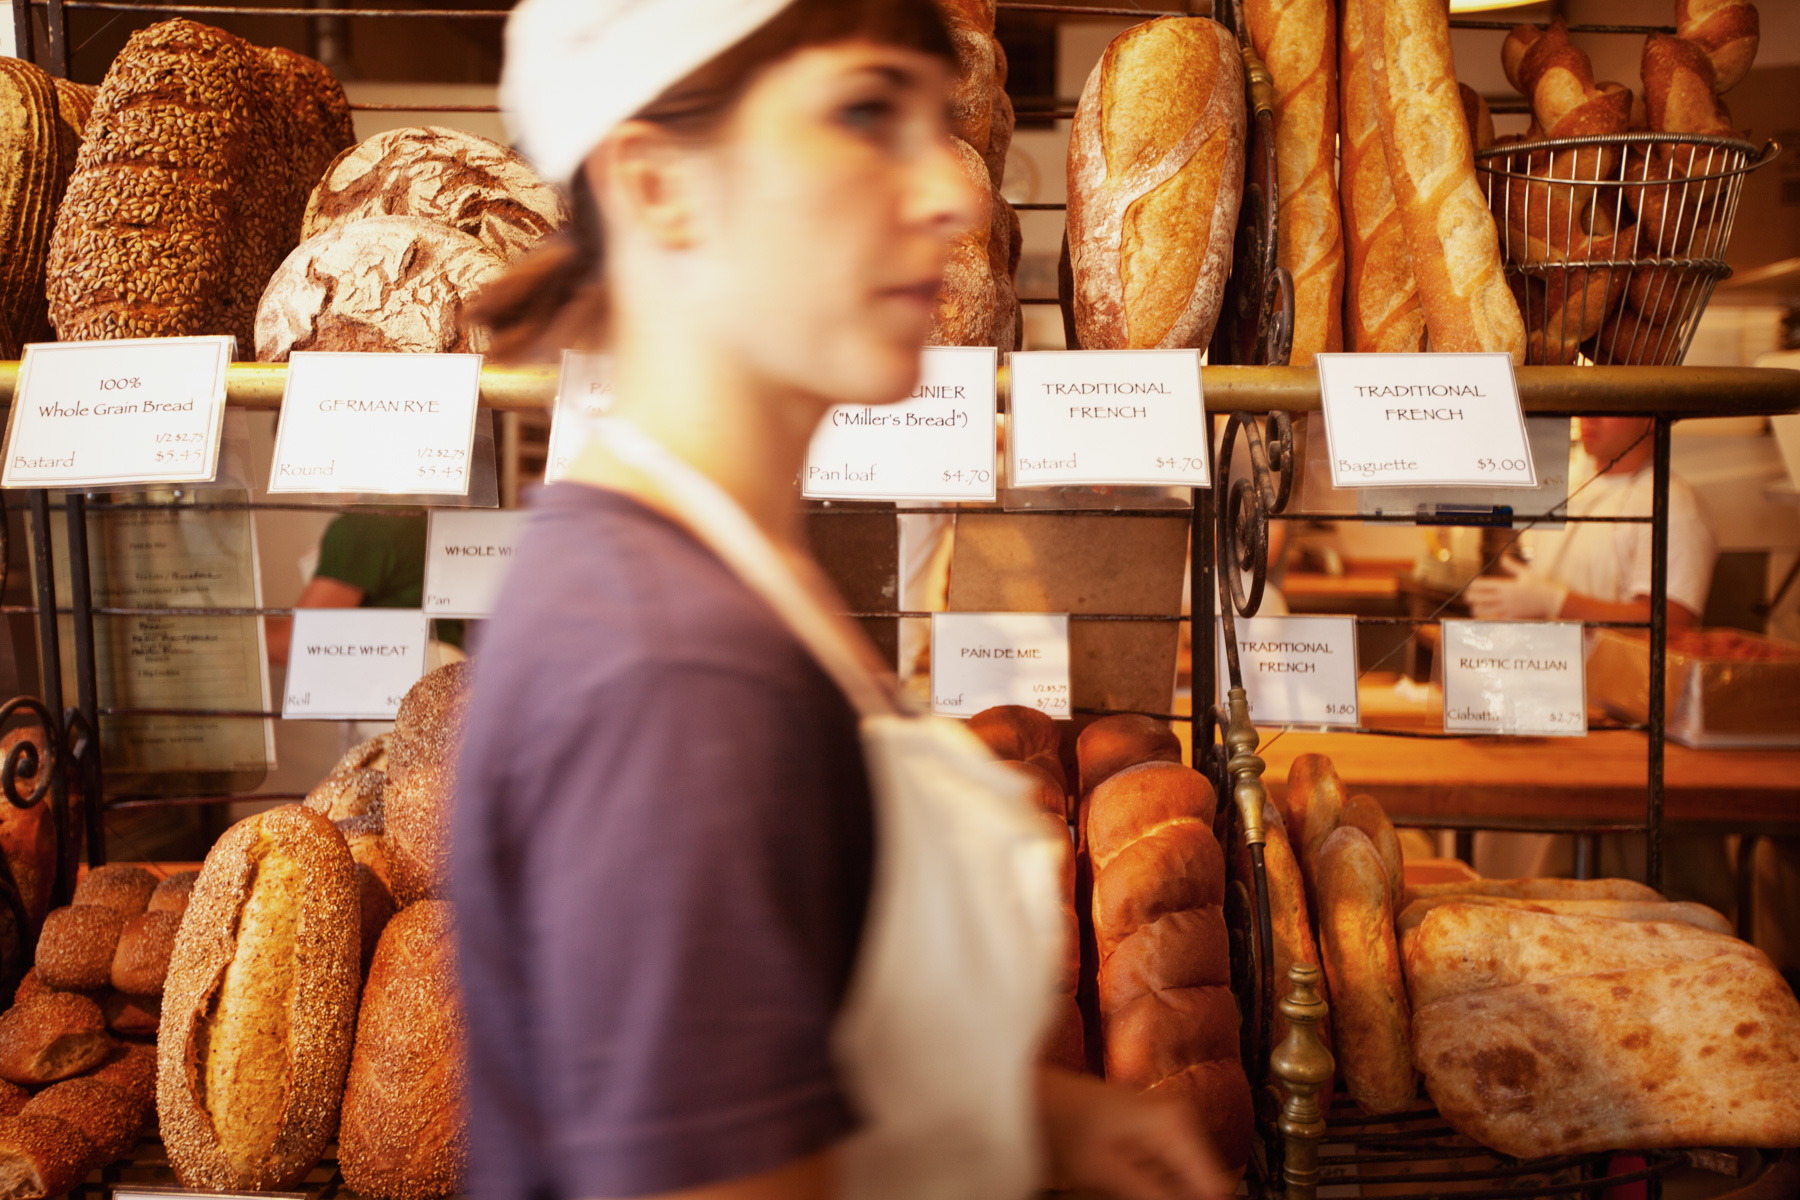 bakery-display-fresh-bread-1.jpg